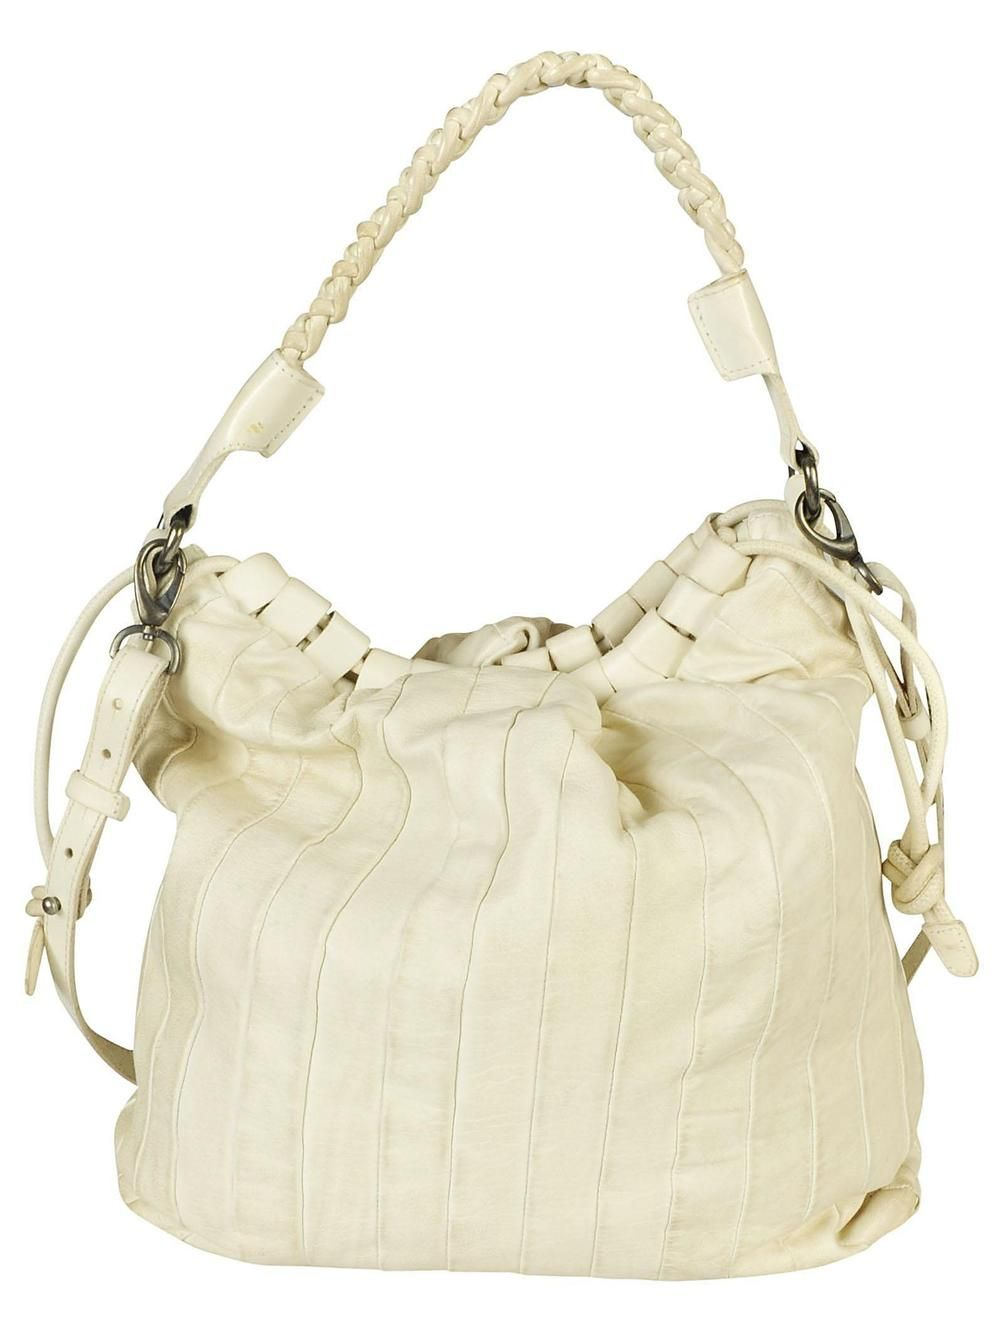 Hobo Bags http://picvpic.com/women-accessories/hobo-bags?ref=24nEyh